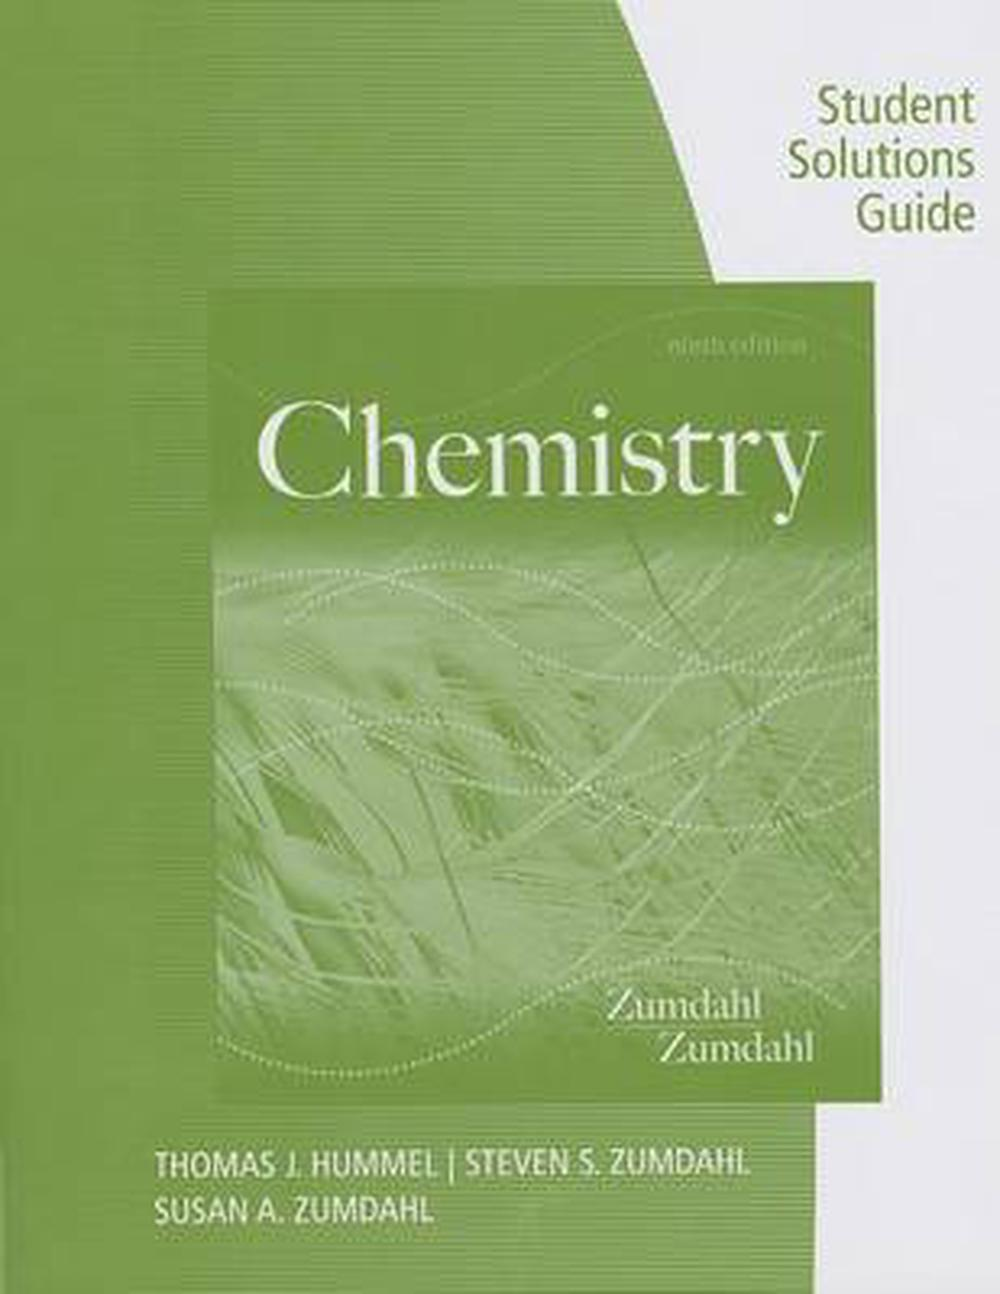 Student Solutions Guide for Zumdahl/Zumdahl's Chemistry, ...